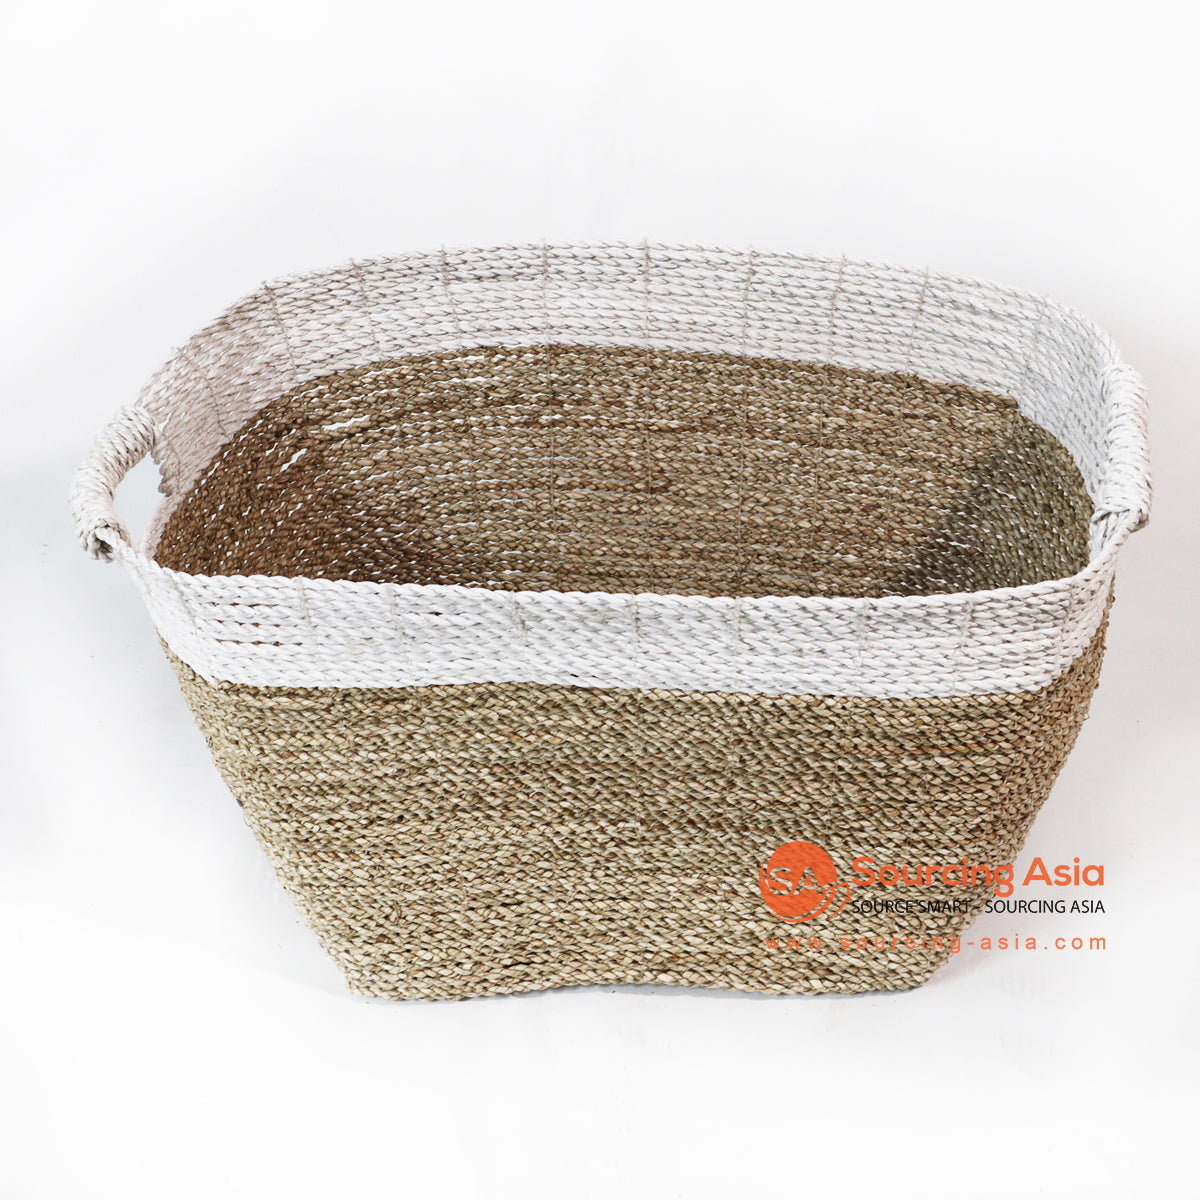 HBS095 RECTANGLE BASKET